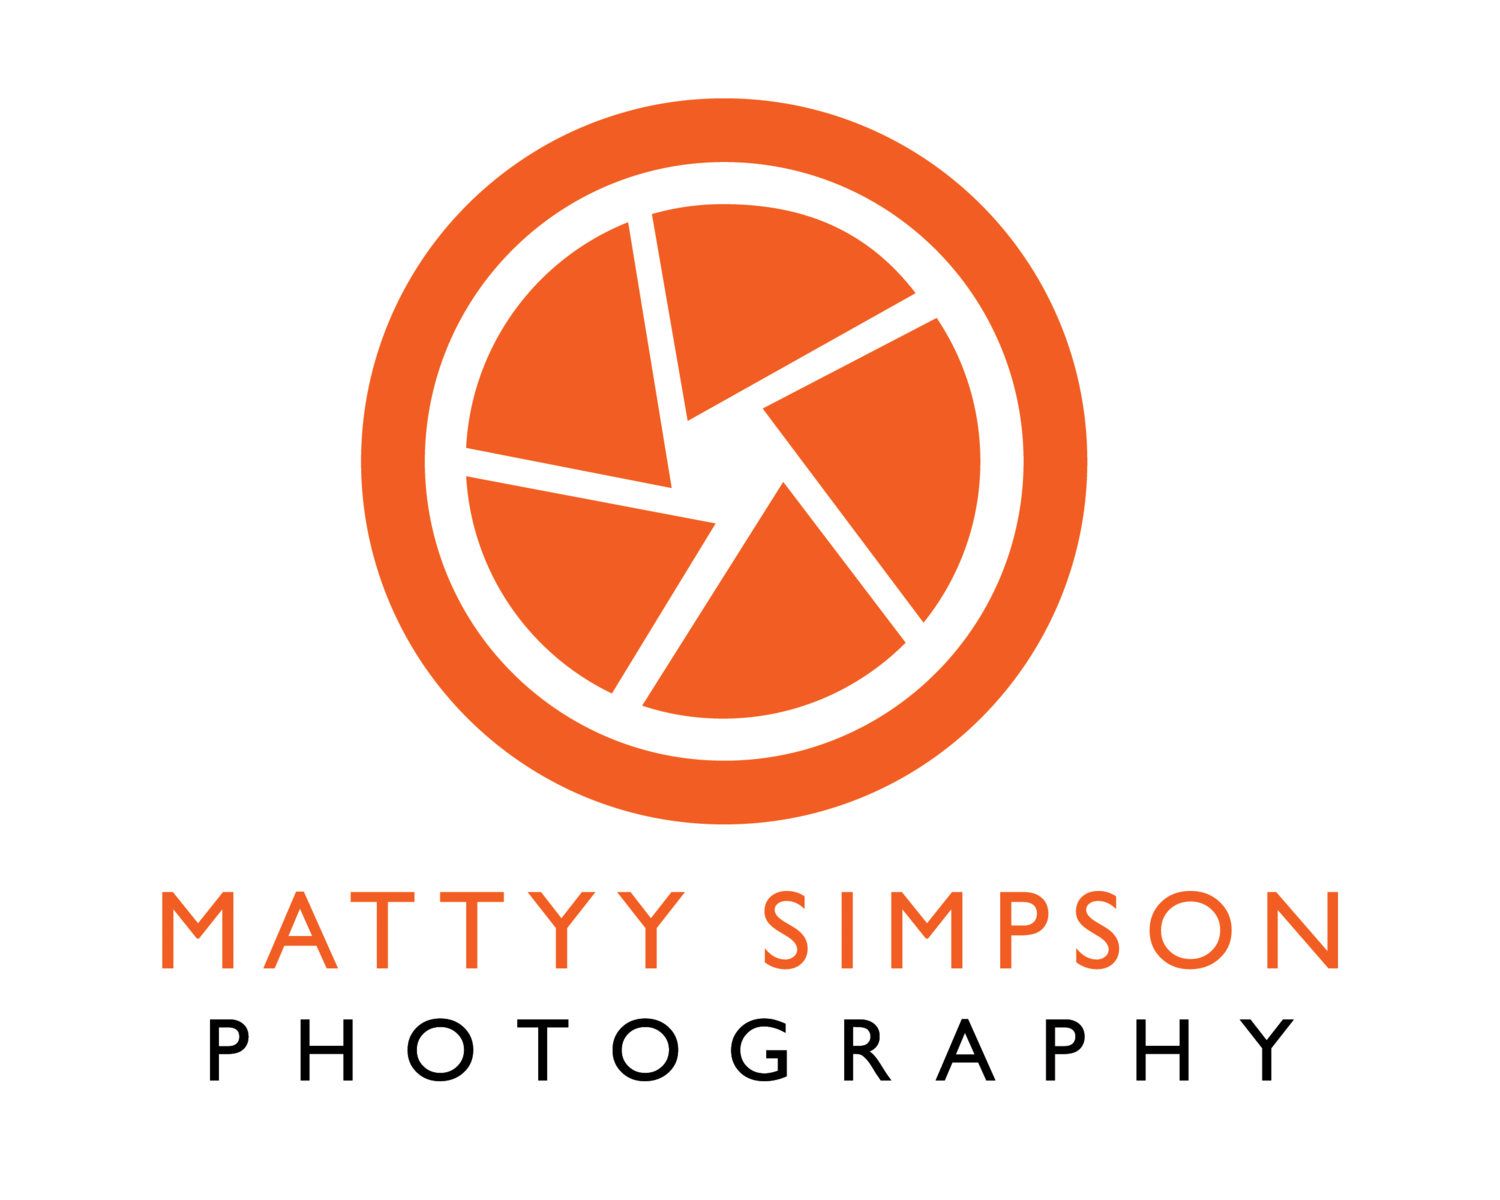 Mattyy Simpson Photography